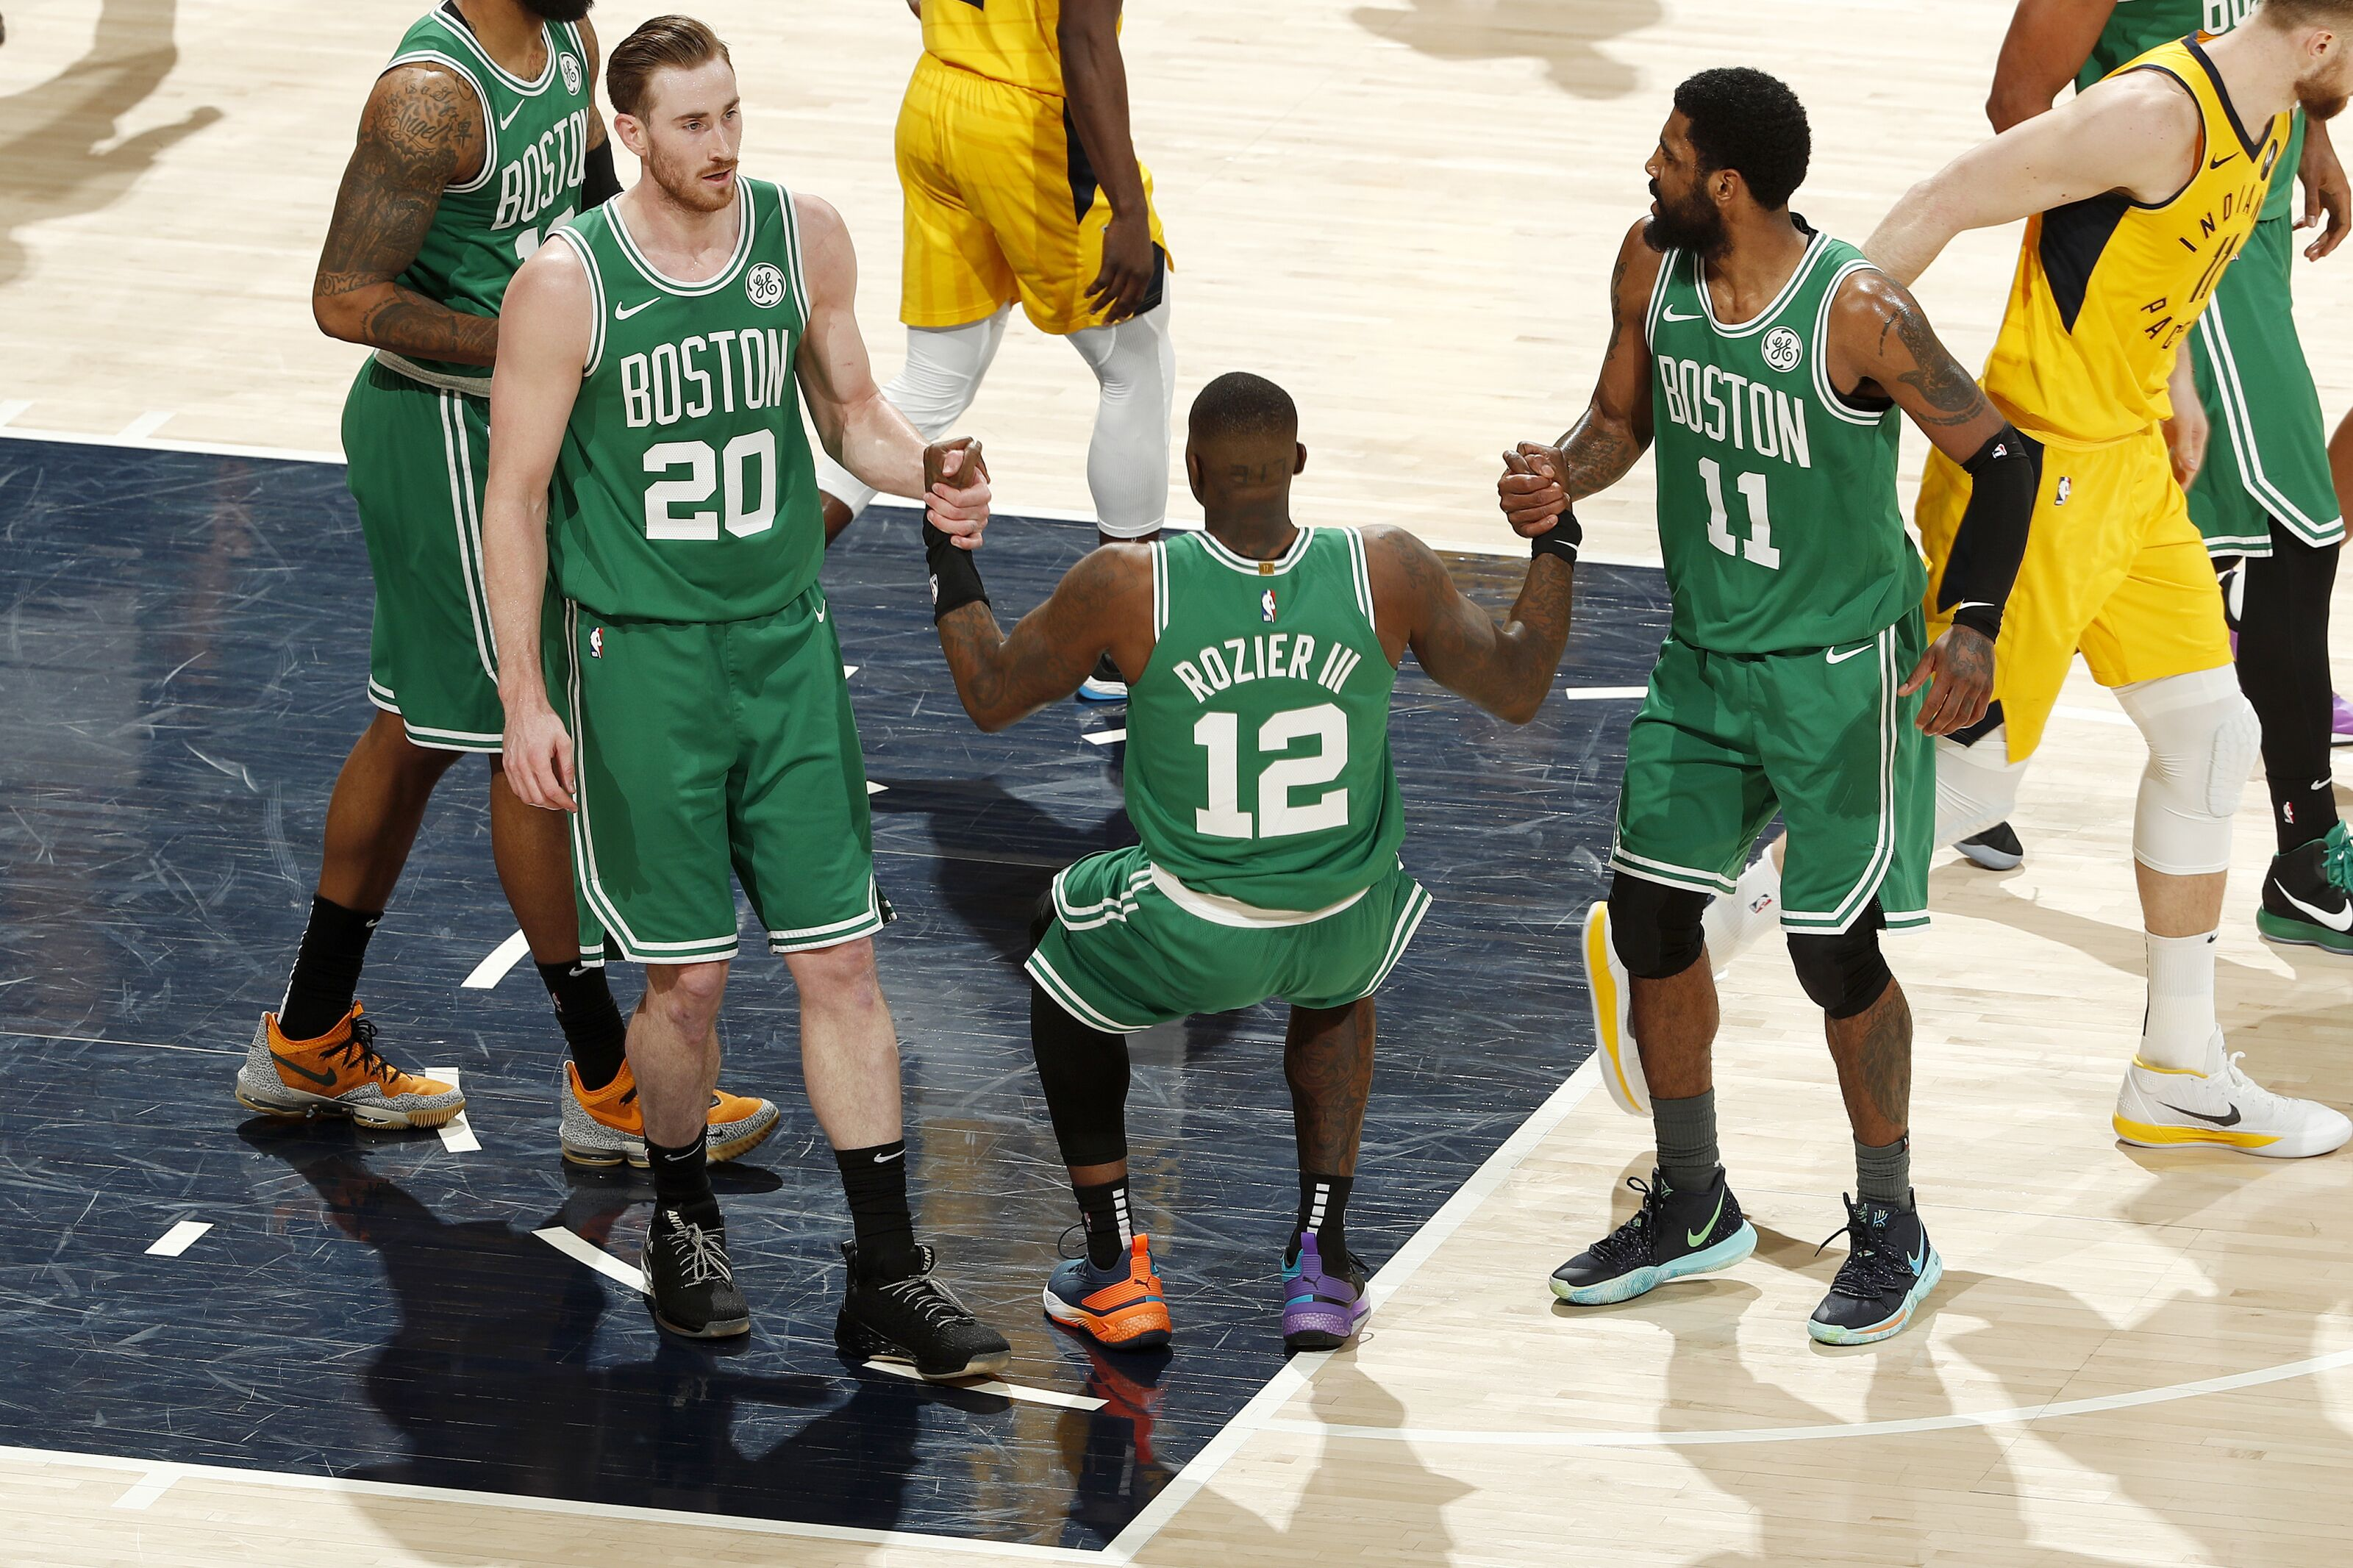 Celtics finish strong to take 3-0 lead over the Pacers